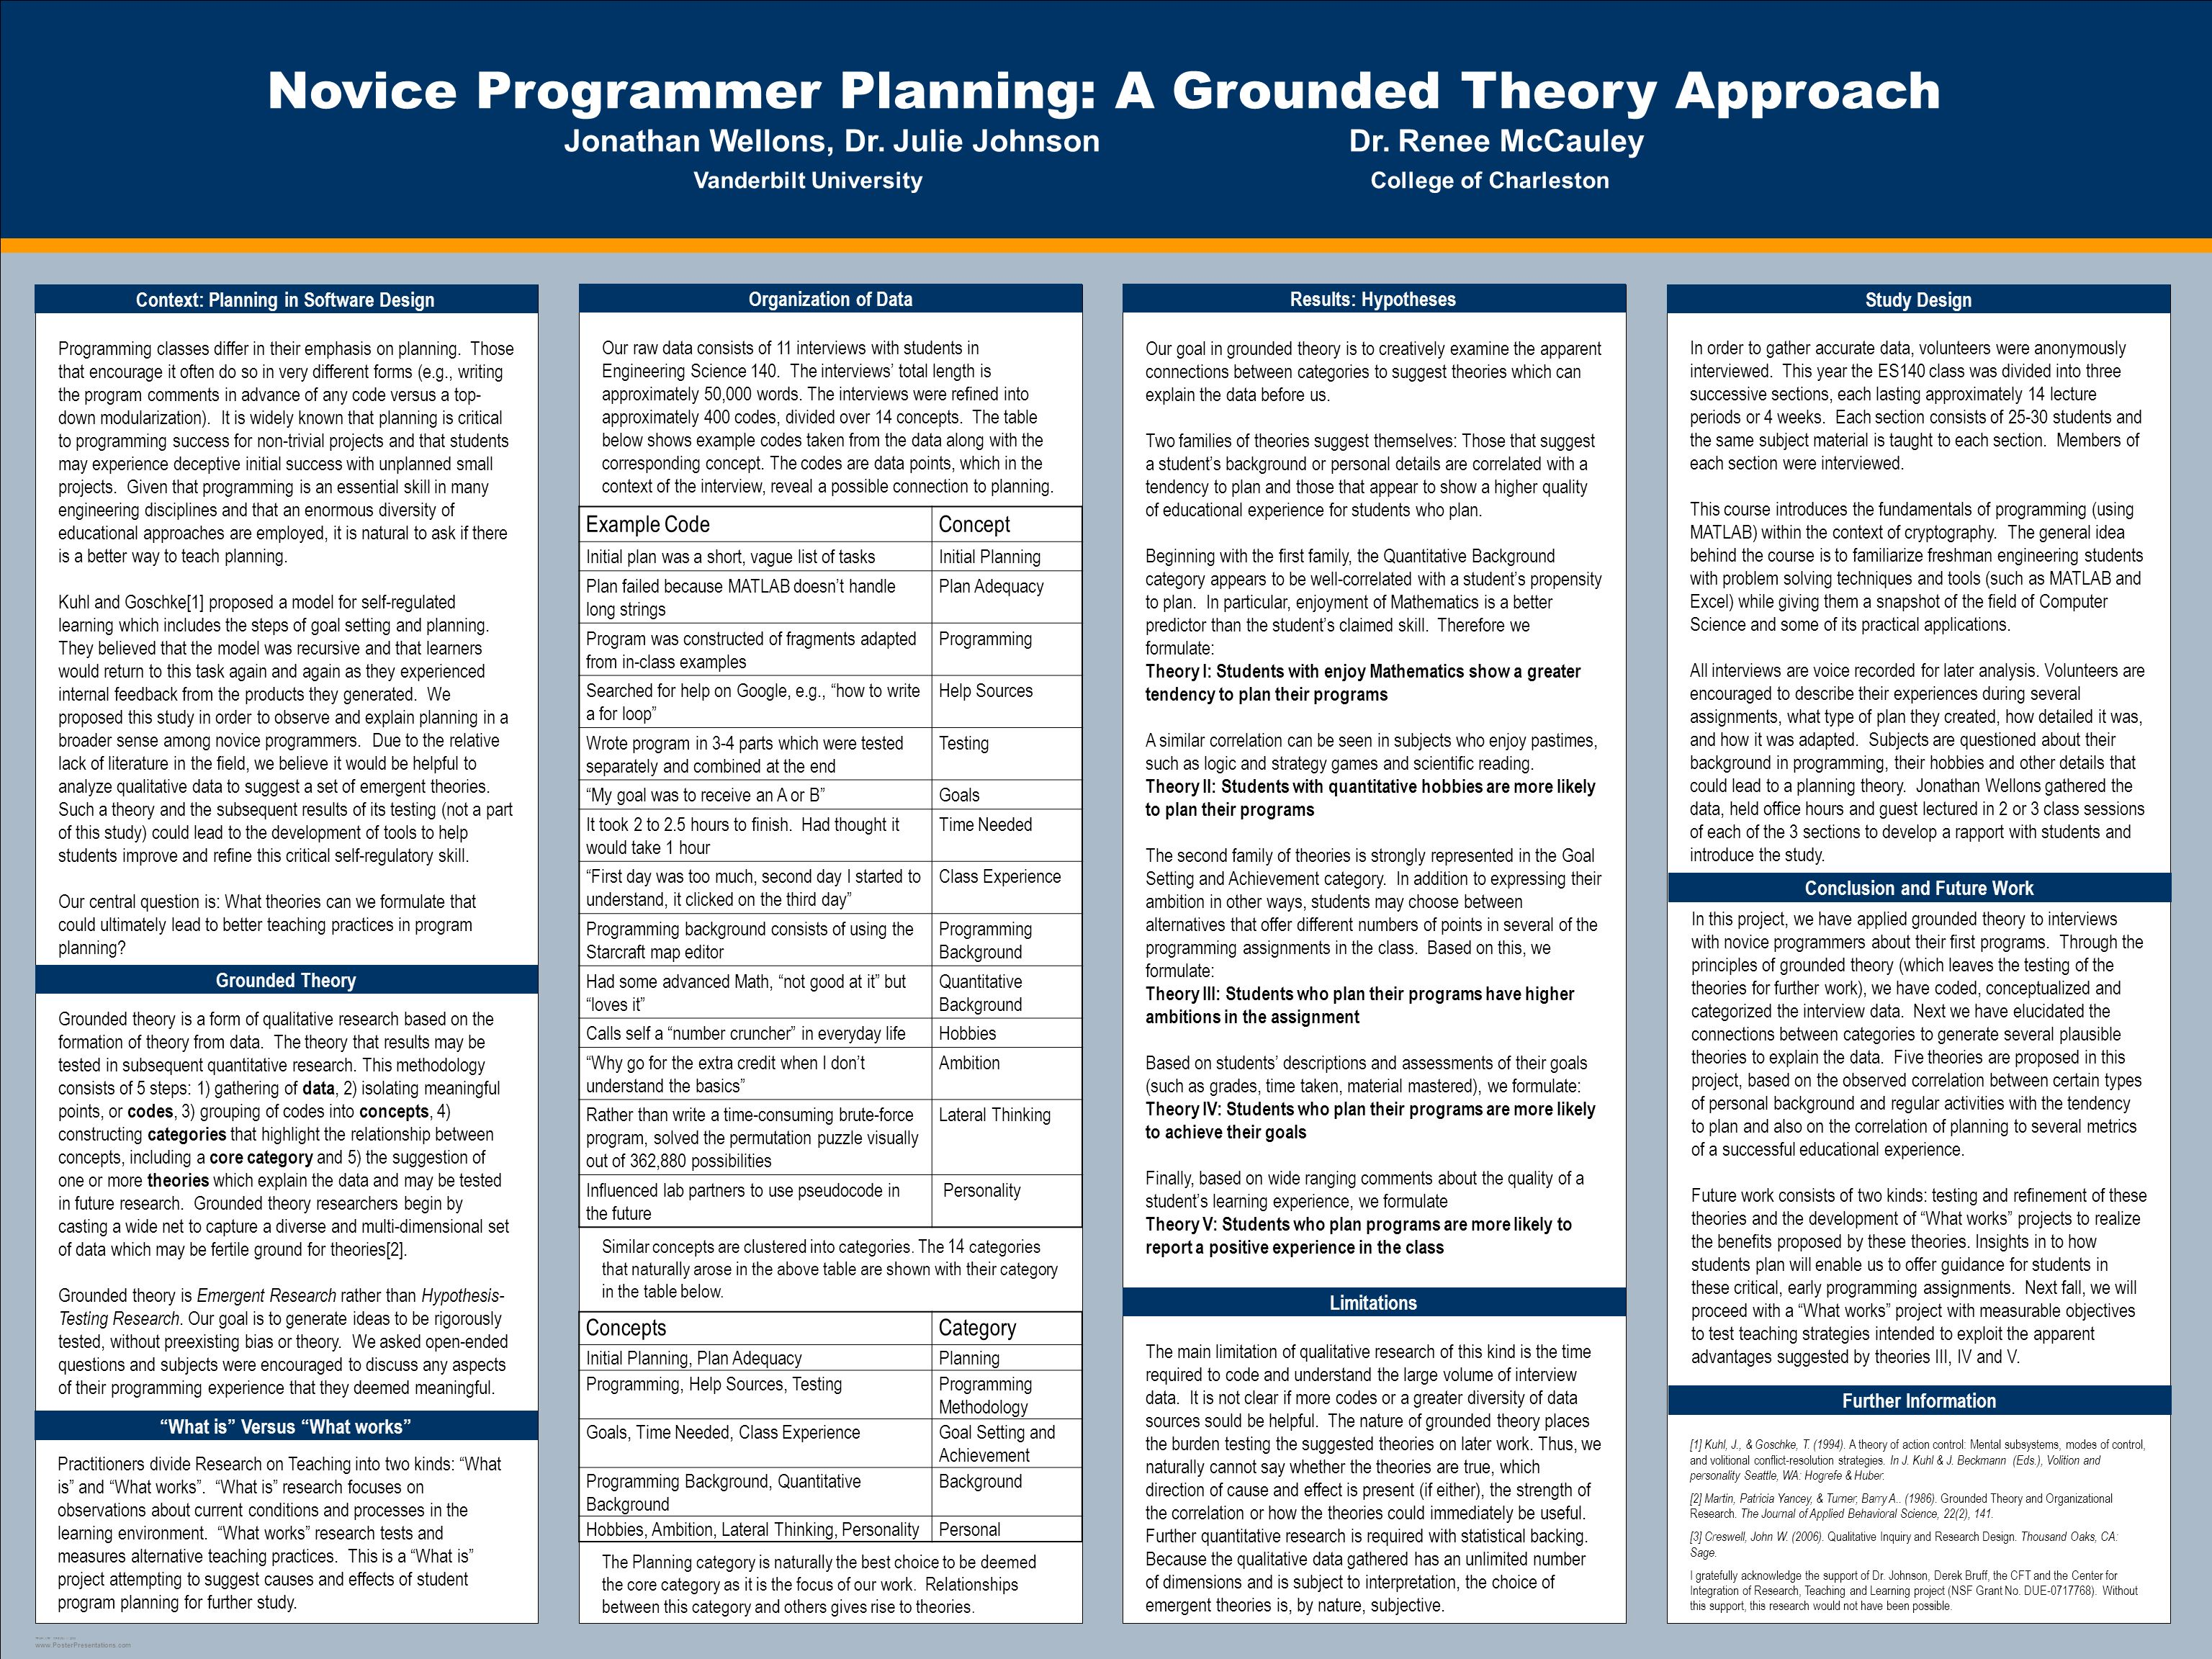 TEMPLATE DESIGN © 2008 www.PosterPresentations.com Novice Programmer Planning: A Grounded Theory Approach Jonathan Wellons, Dr.